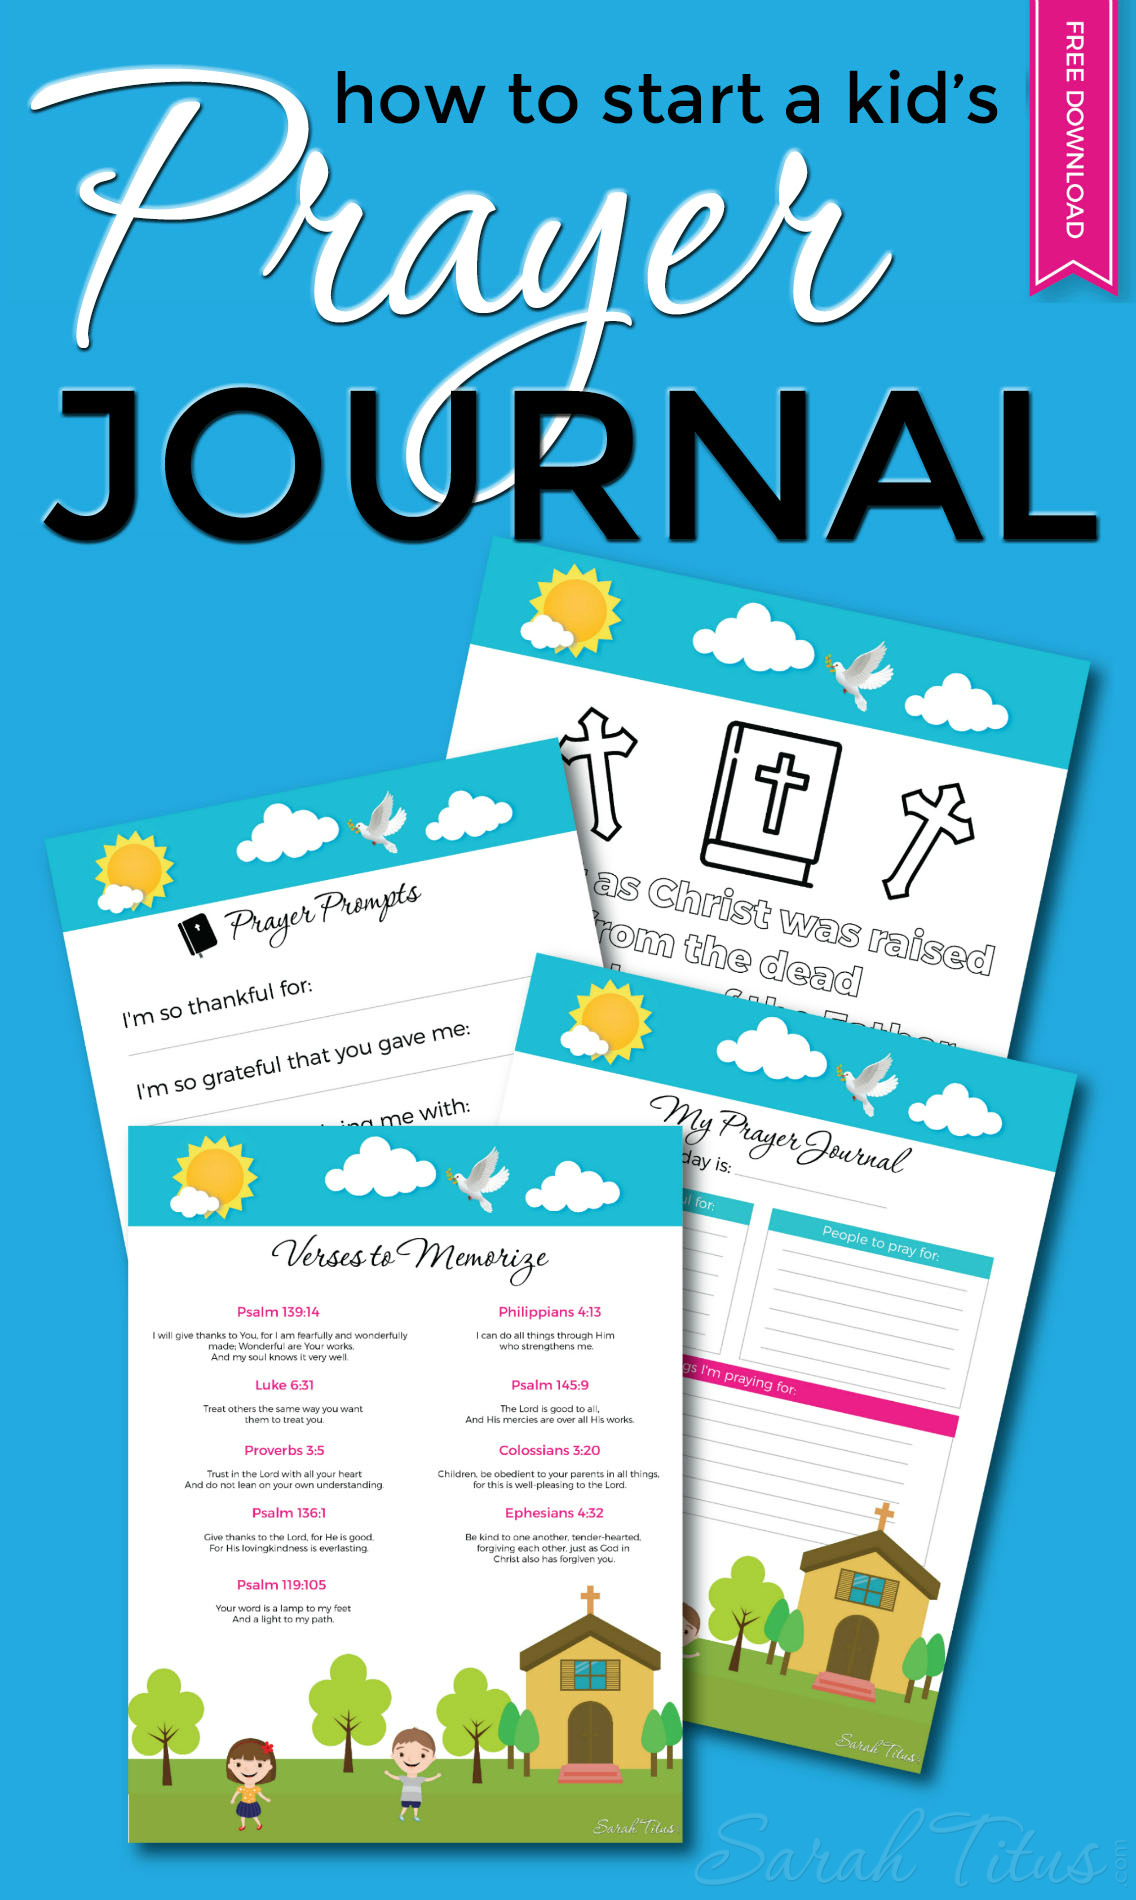 A rock-solid prayer life is one of the best gifts you can give your kids, but it can be difficult to get them there. Here's how to start a kid's prayer journal and get them excited about praying, plus some free printables to boot!